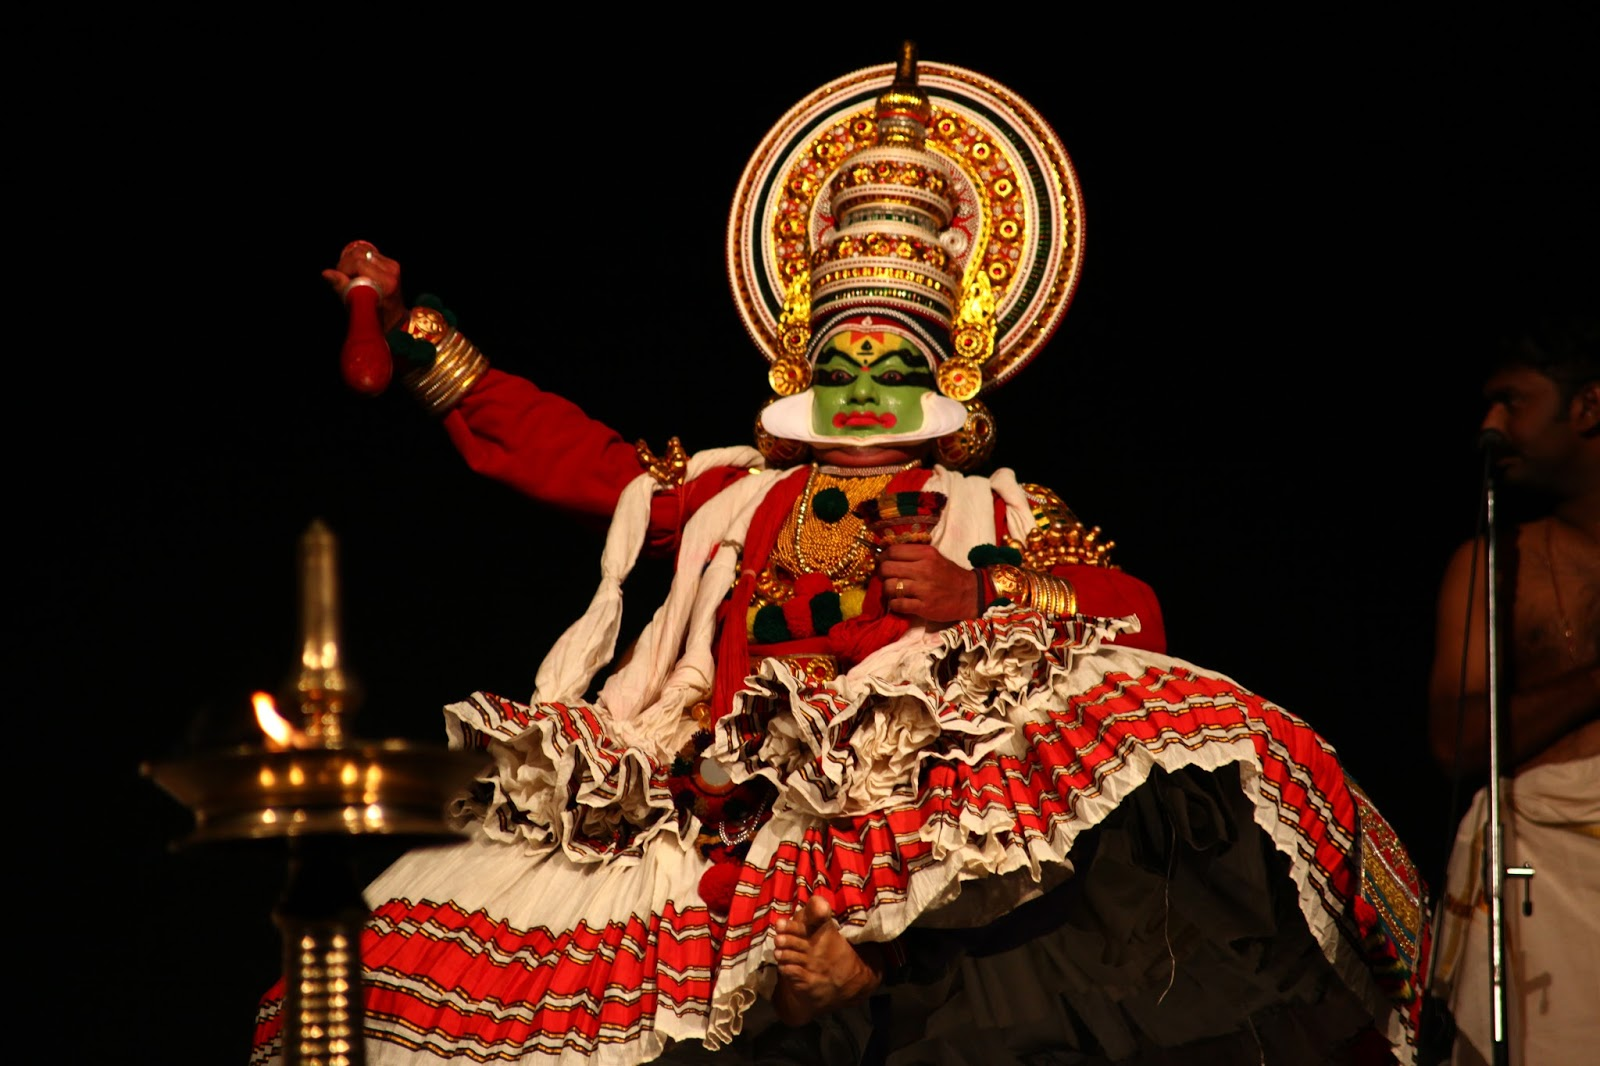 Trip to Kochi to see the Kathakali Dance